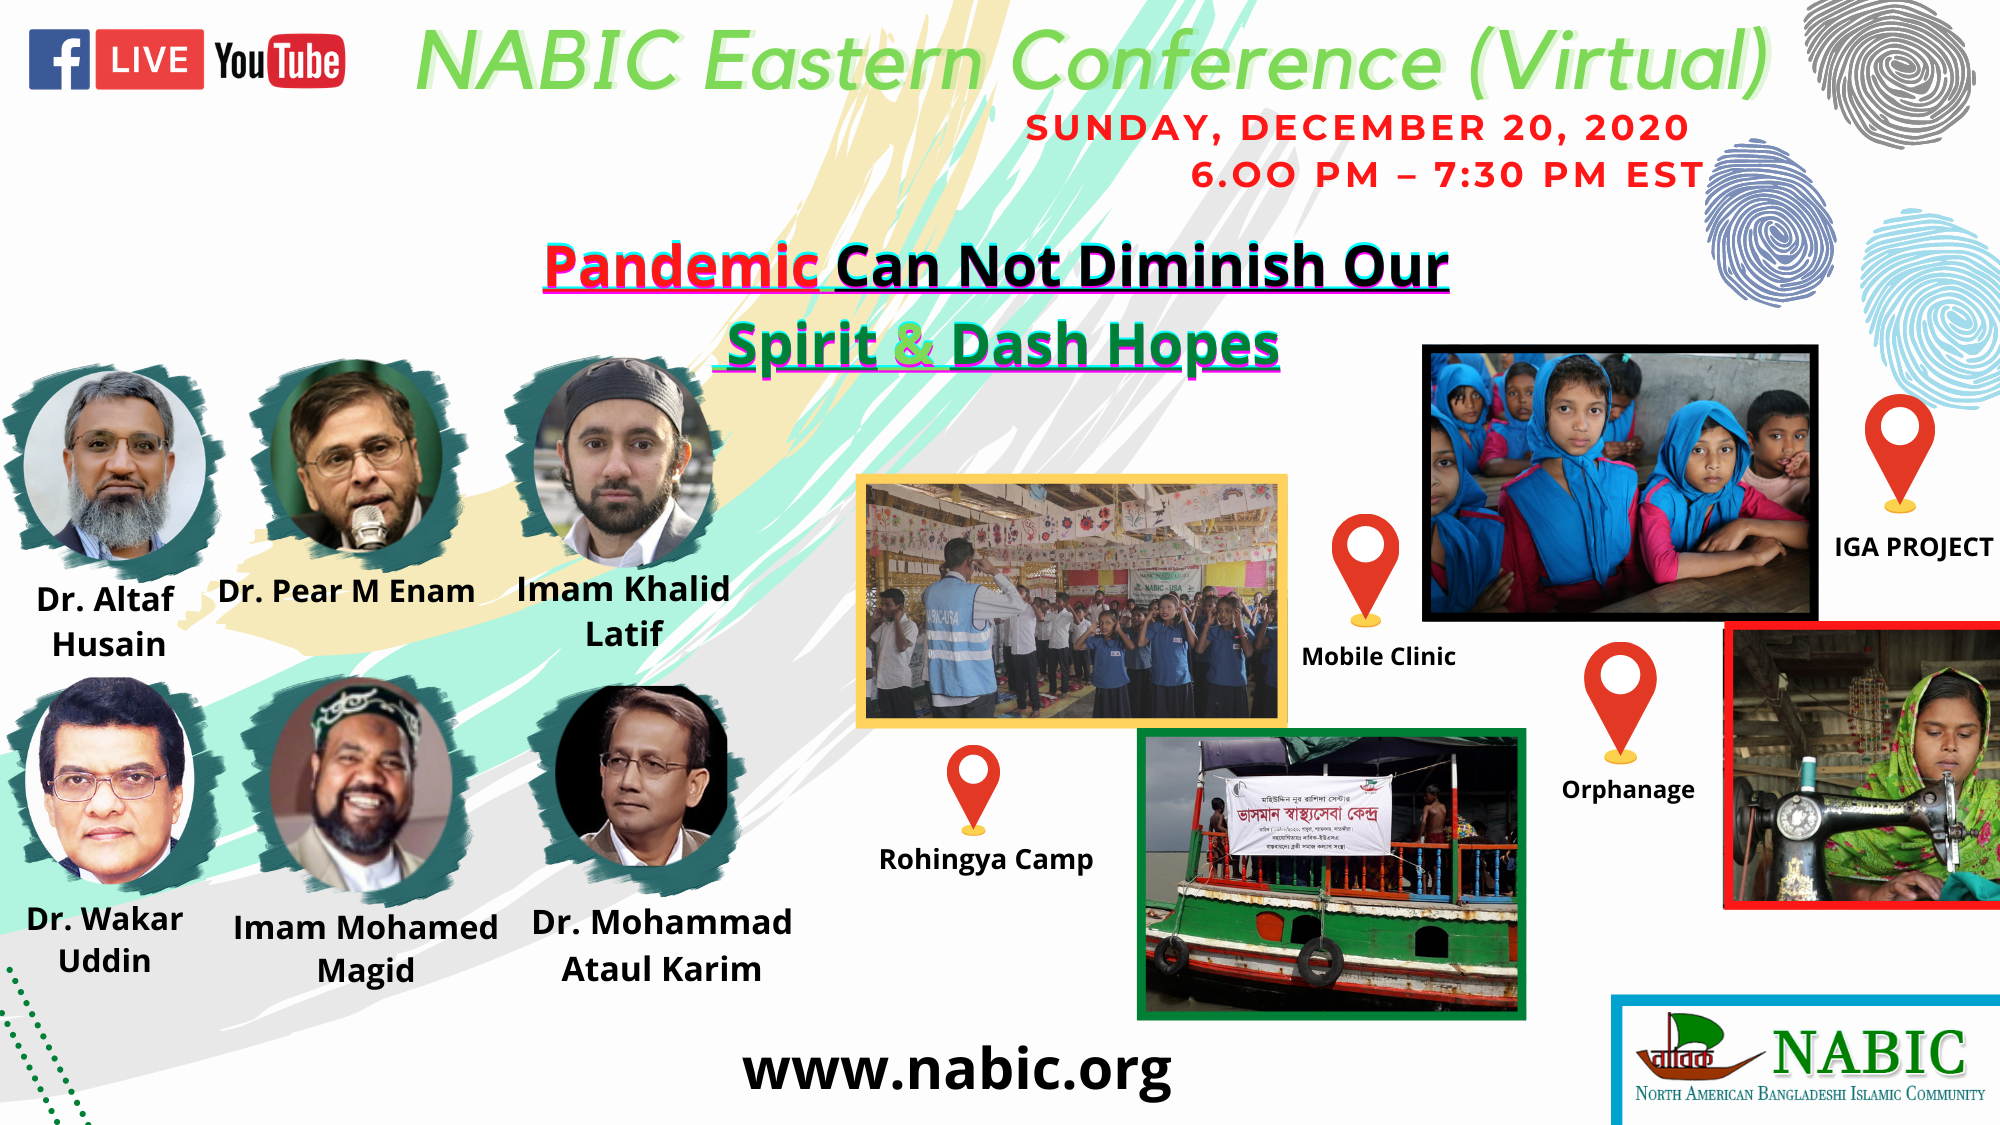 NABIC Eastern Conference